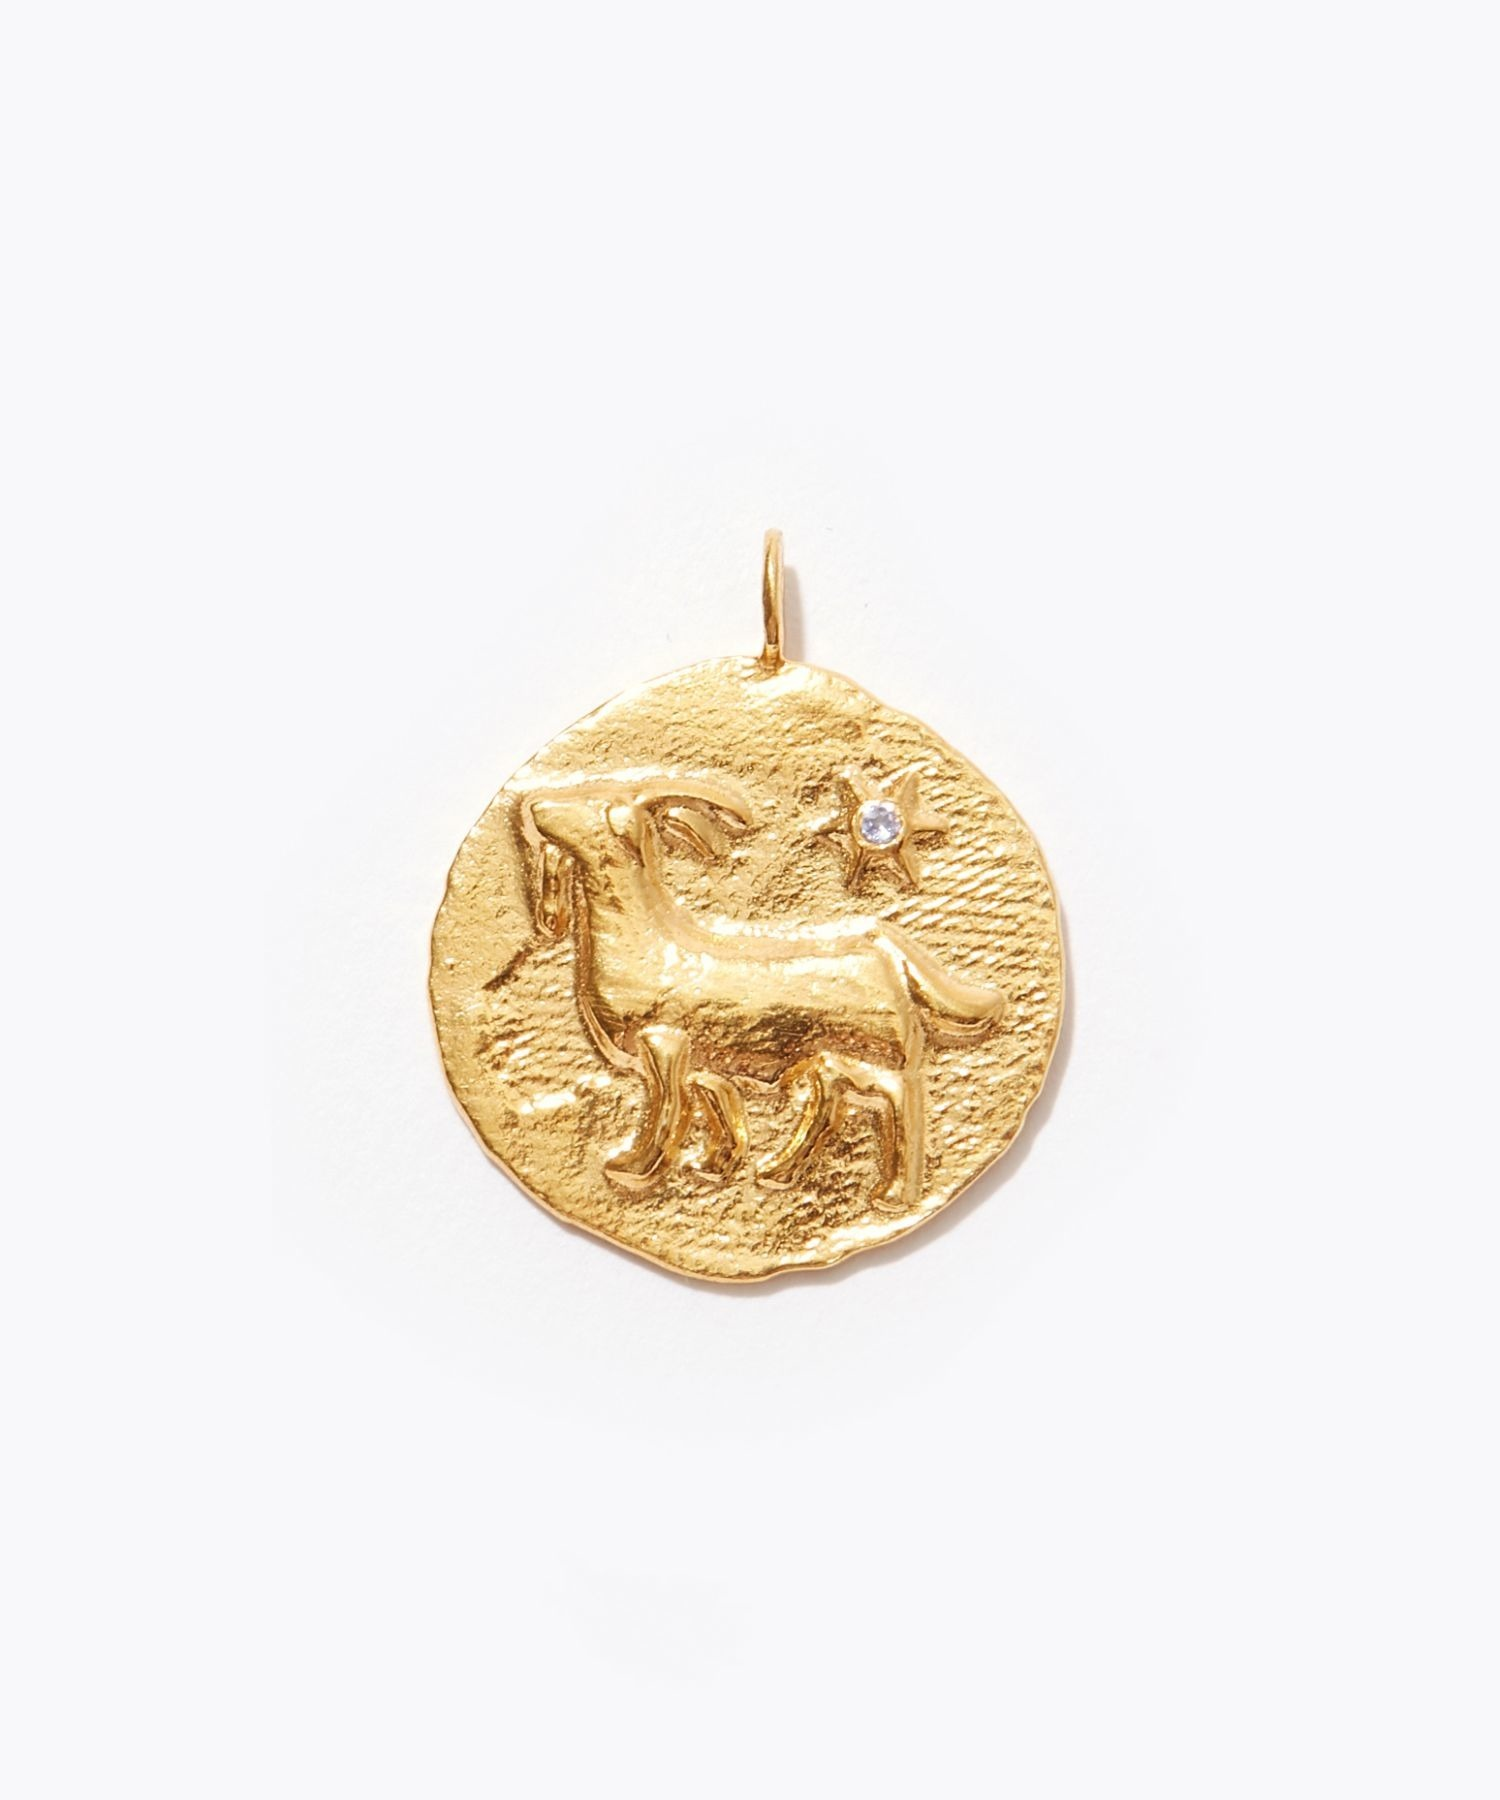 [constellation] Capricorn big coin charm